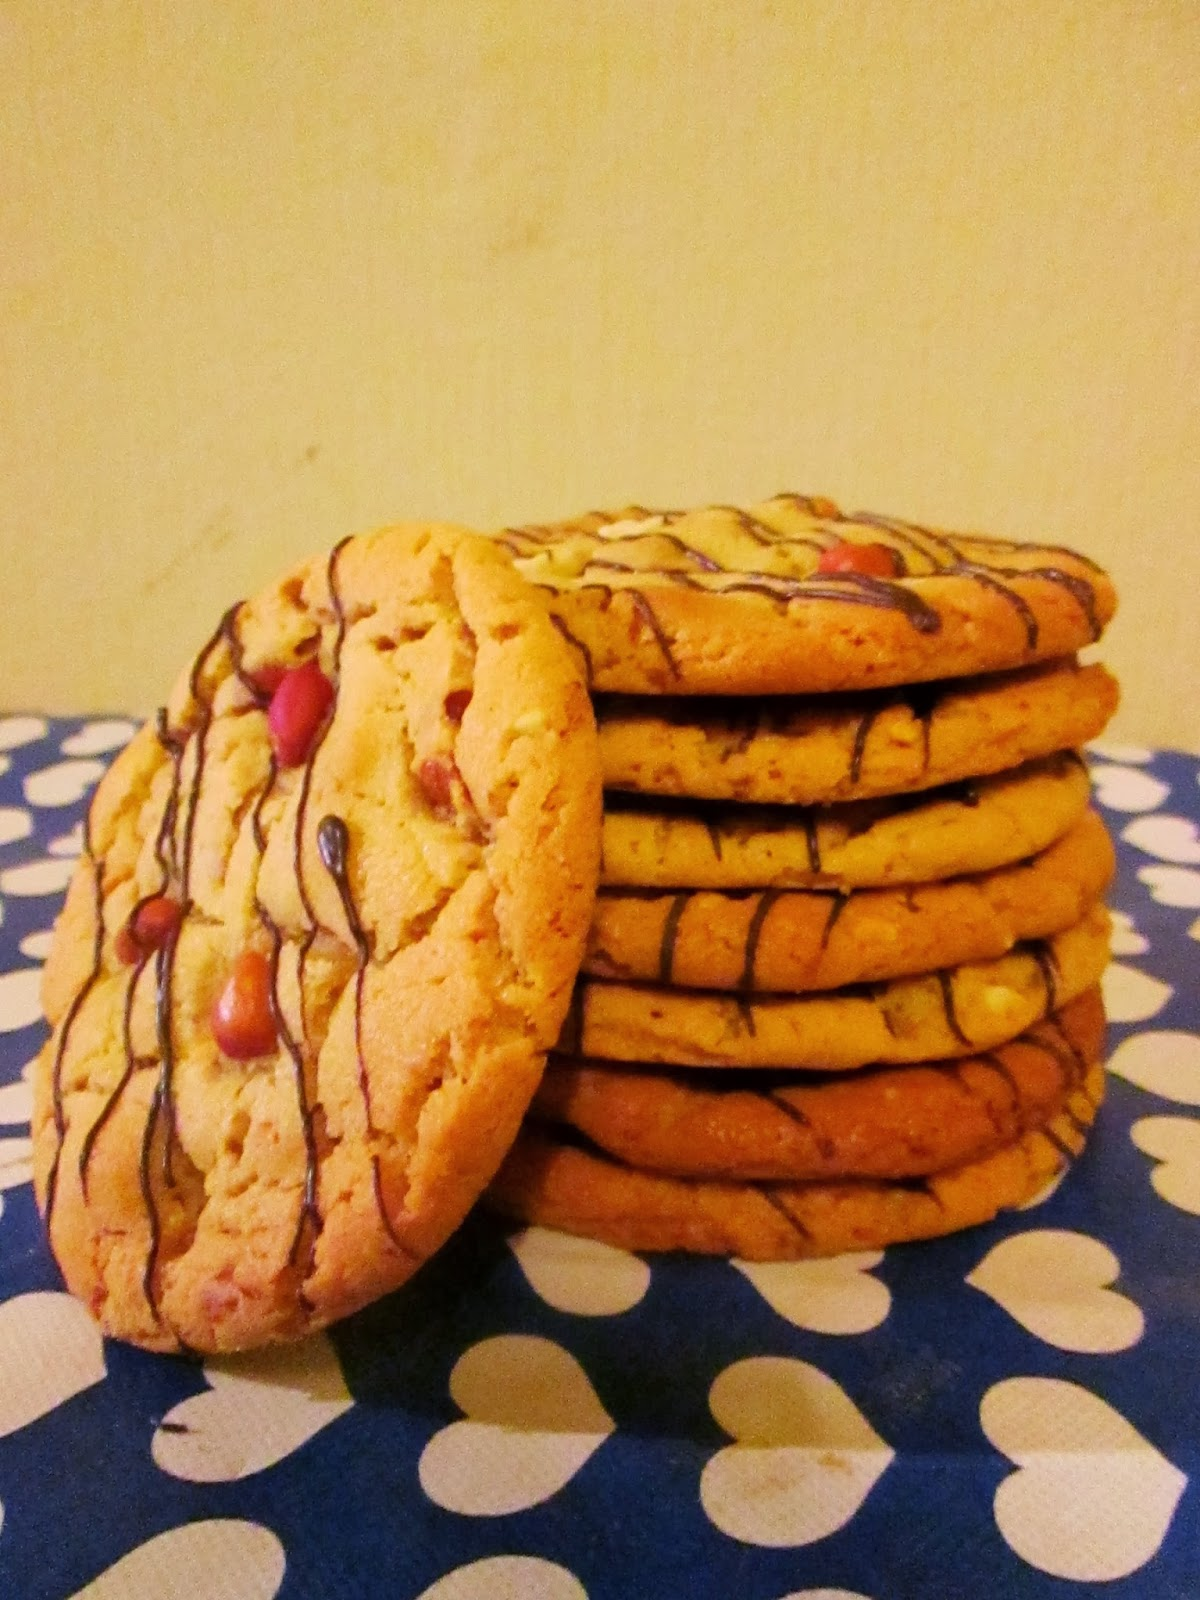 http://themessykitchenuk.blogspot.co.uk/2013/11/peanut-butter-cookies.html